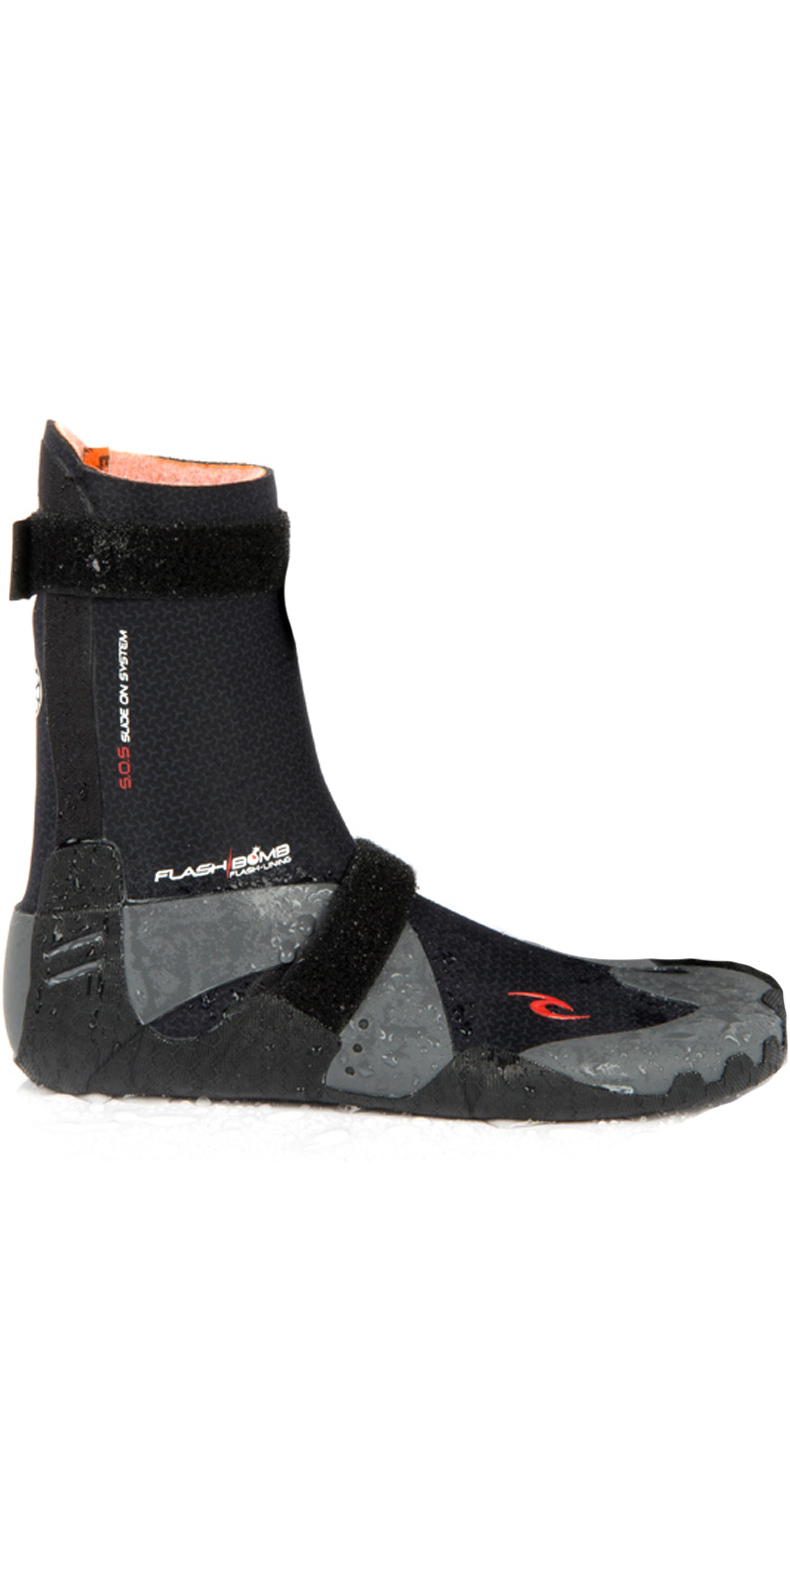 Rip Curl Flashbomb 3mm Split Toe wetsuit Boot WBO5HF